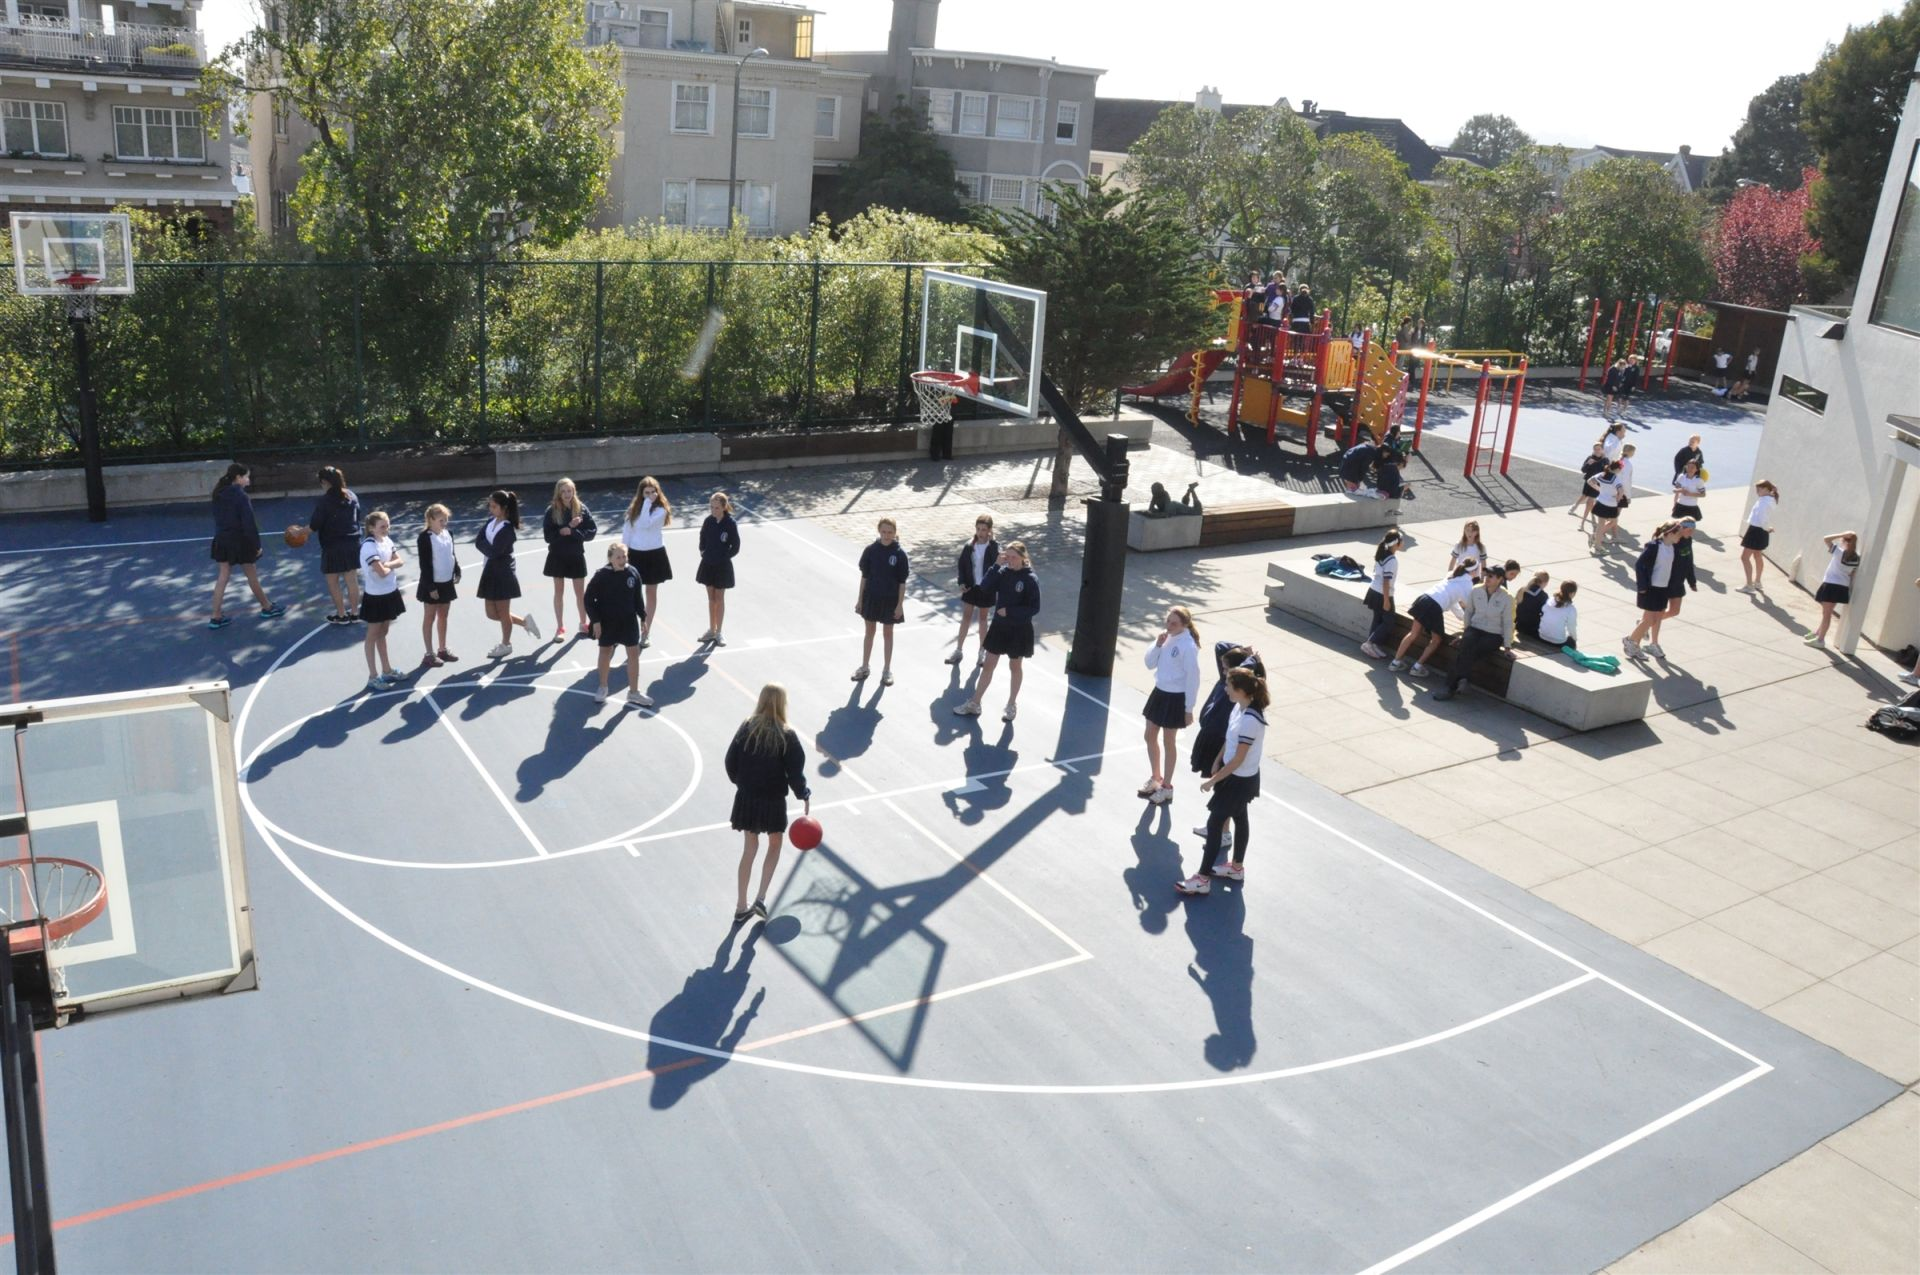 Both Upper and Lower School students can take advantage of recreational time out on the playgrounds.